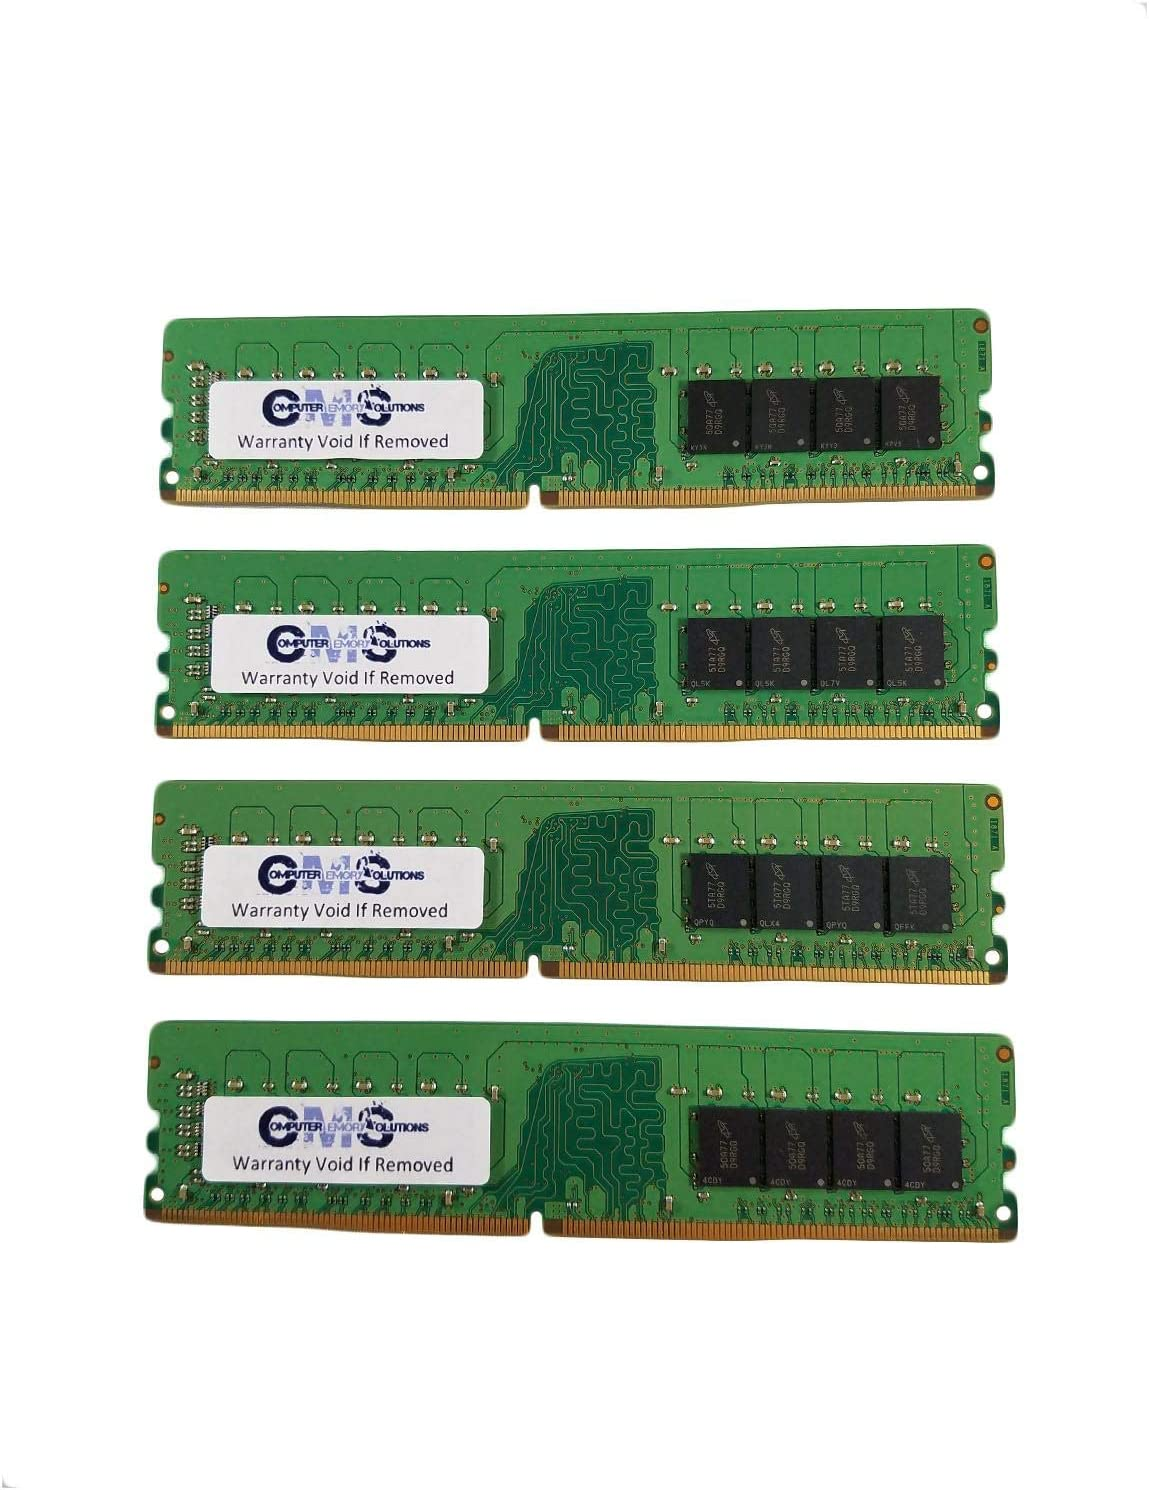 64GB (4X16GB) Memory Ram Compatible with Acer Veriton M Series M4660G, Veriton M Series VM6660G, Veriton X Series X4660G, Veriton X Series X6660G by CMS d56